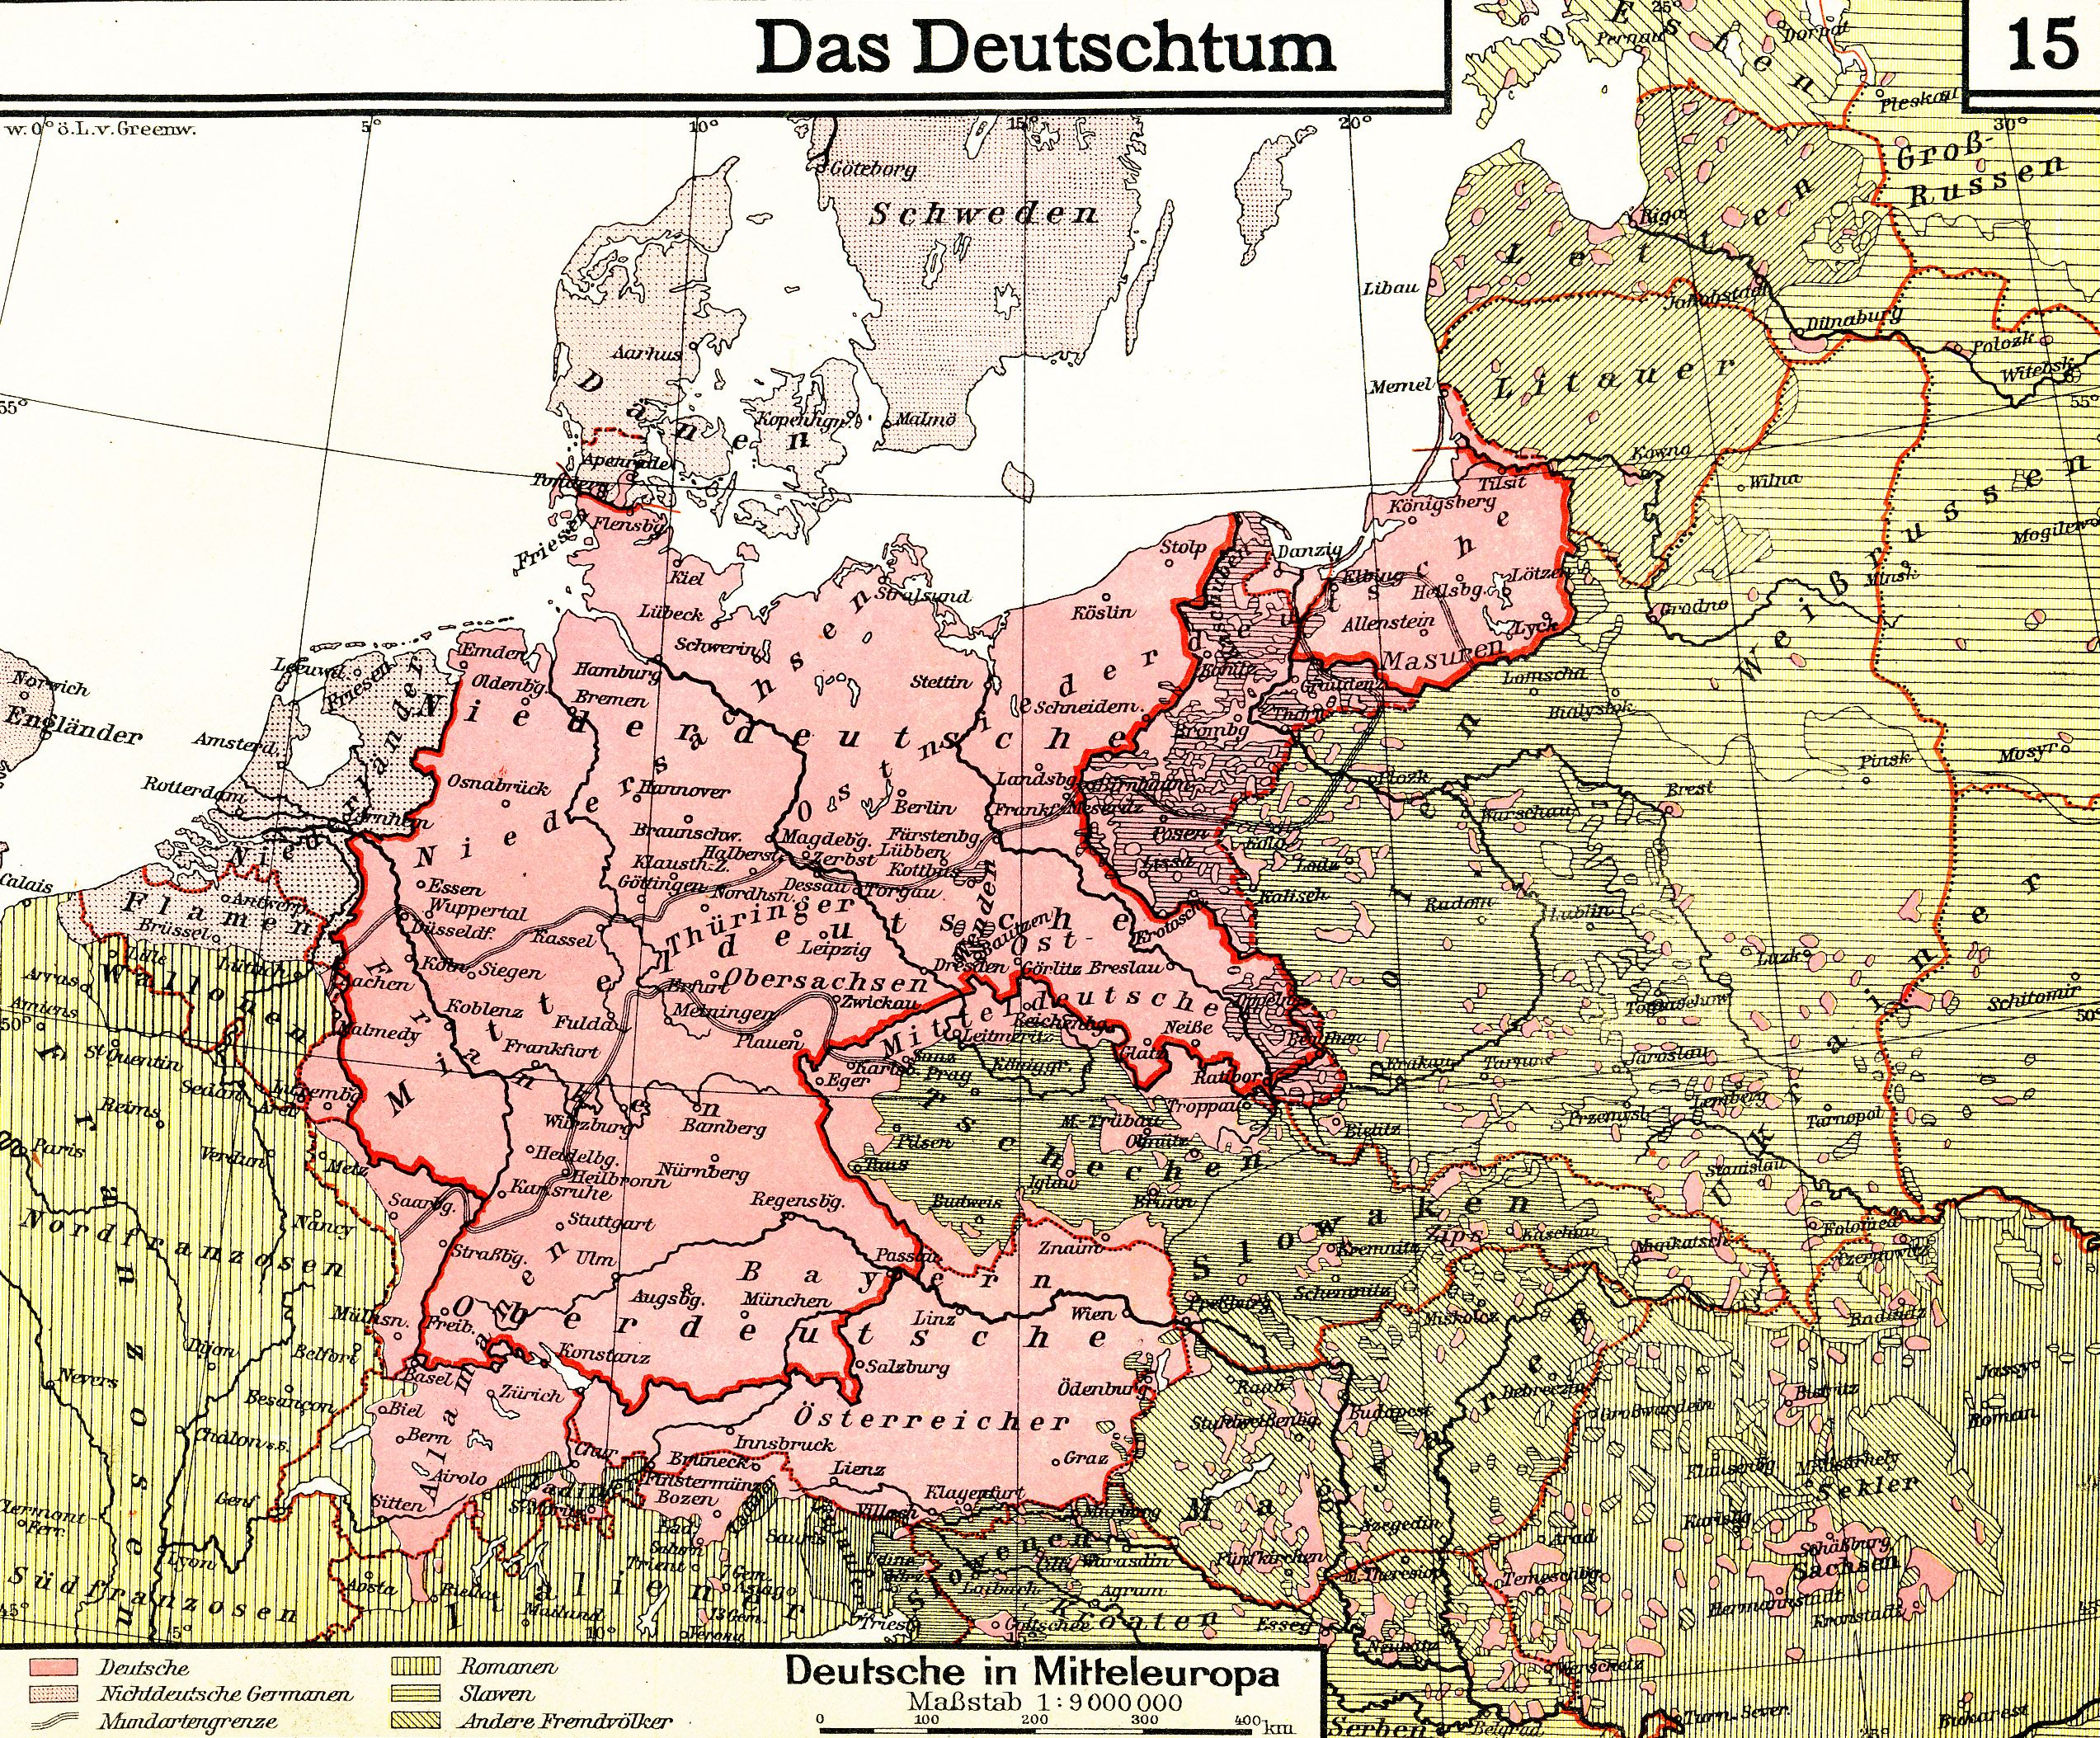 A 1930 German Map Of Ethnic Germans In Central And Eastern Europe